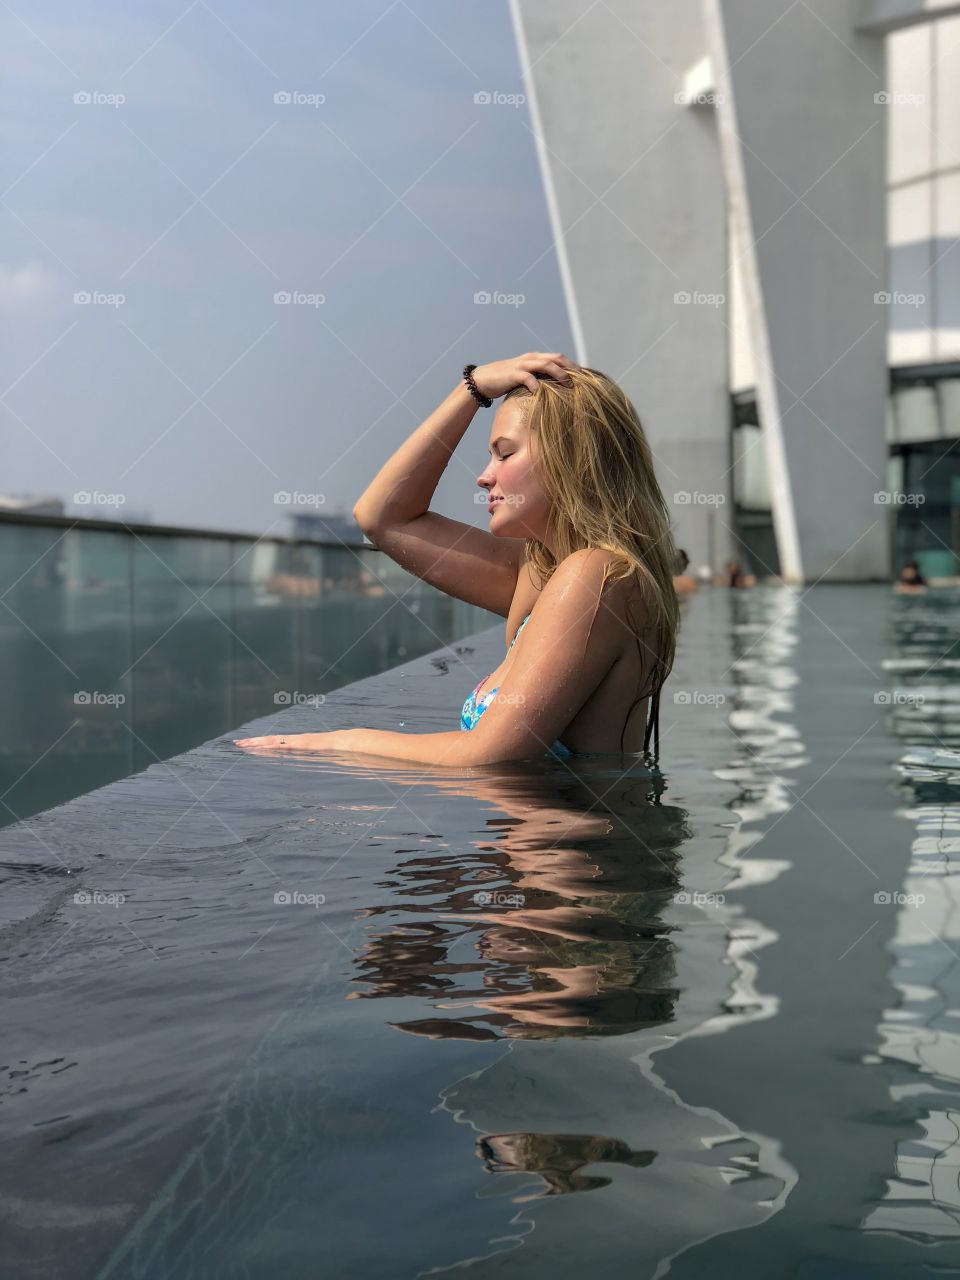 Overlooking the city of Kuala Lumpur from the roof of our AirBnb. Amazing view, and relaxing pool!